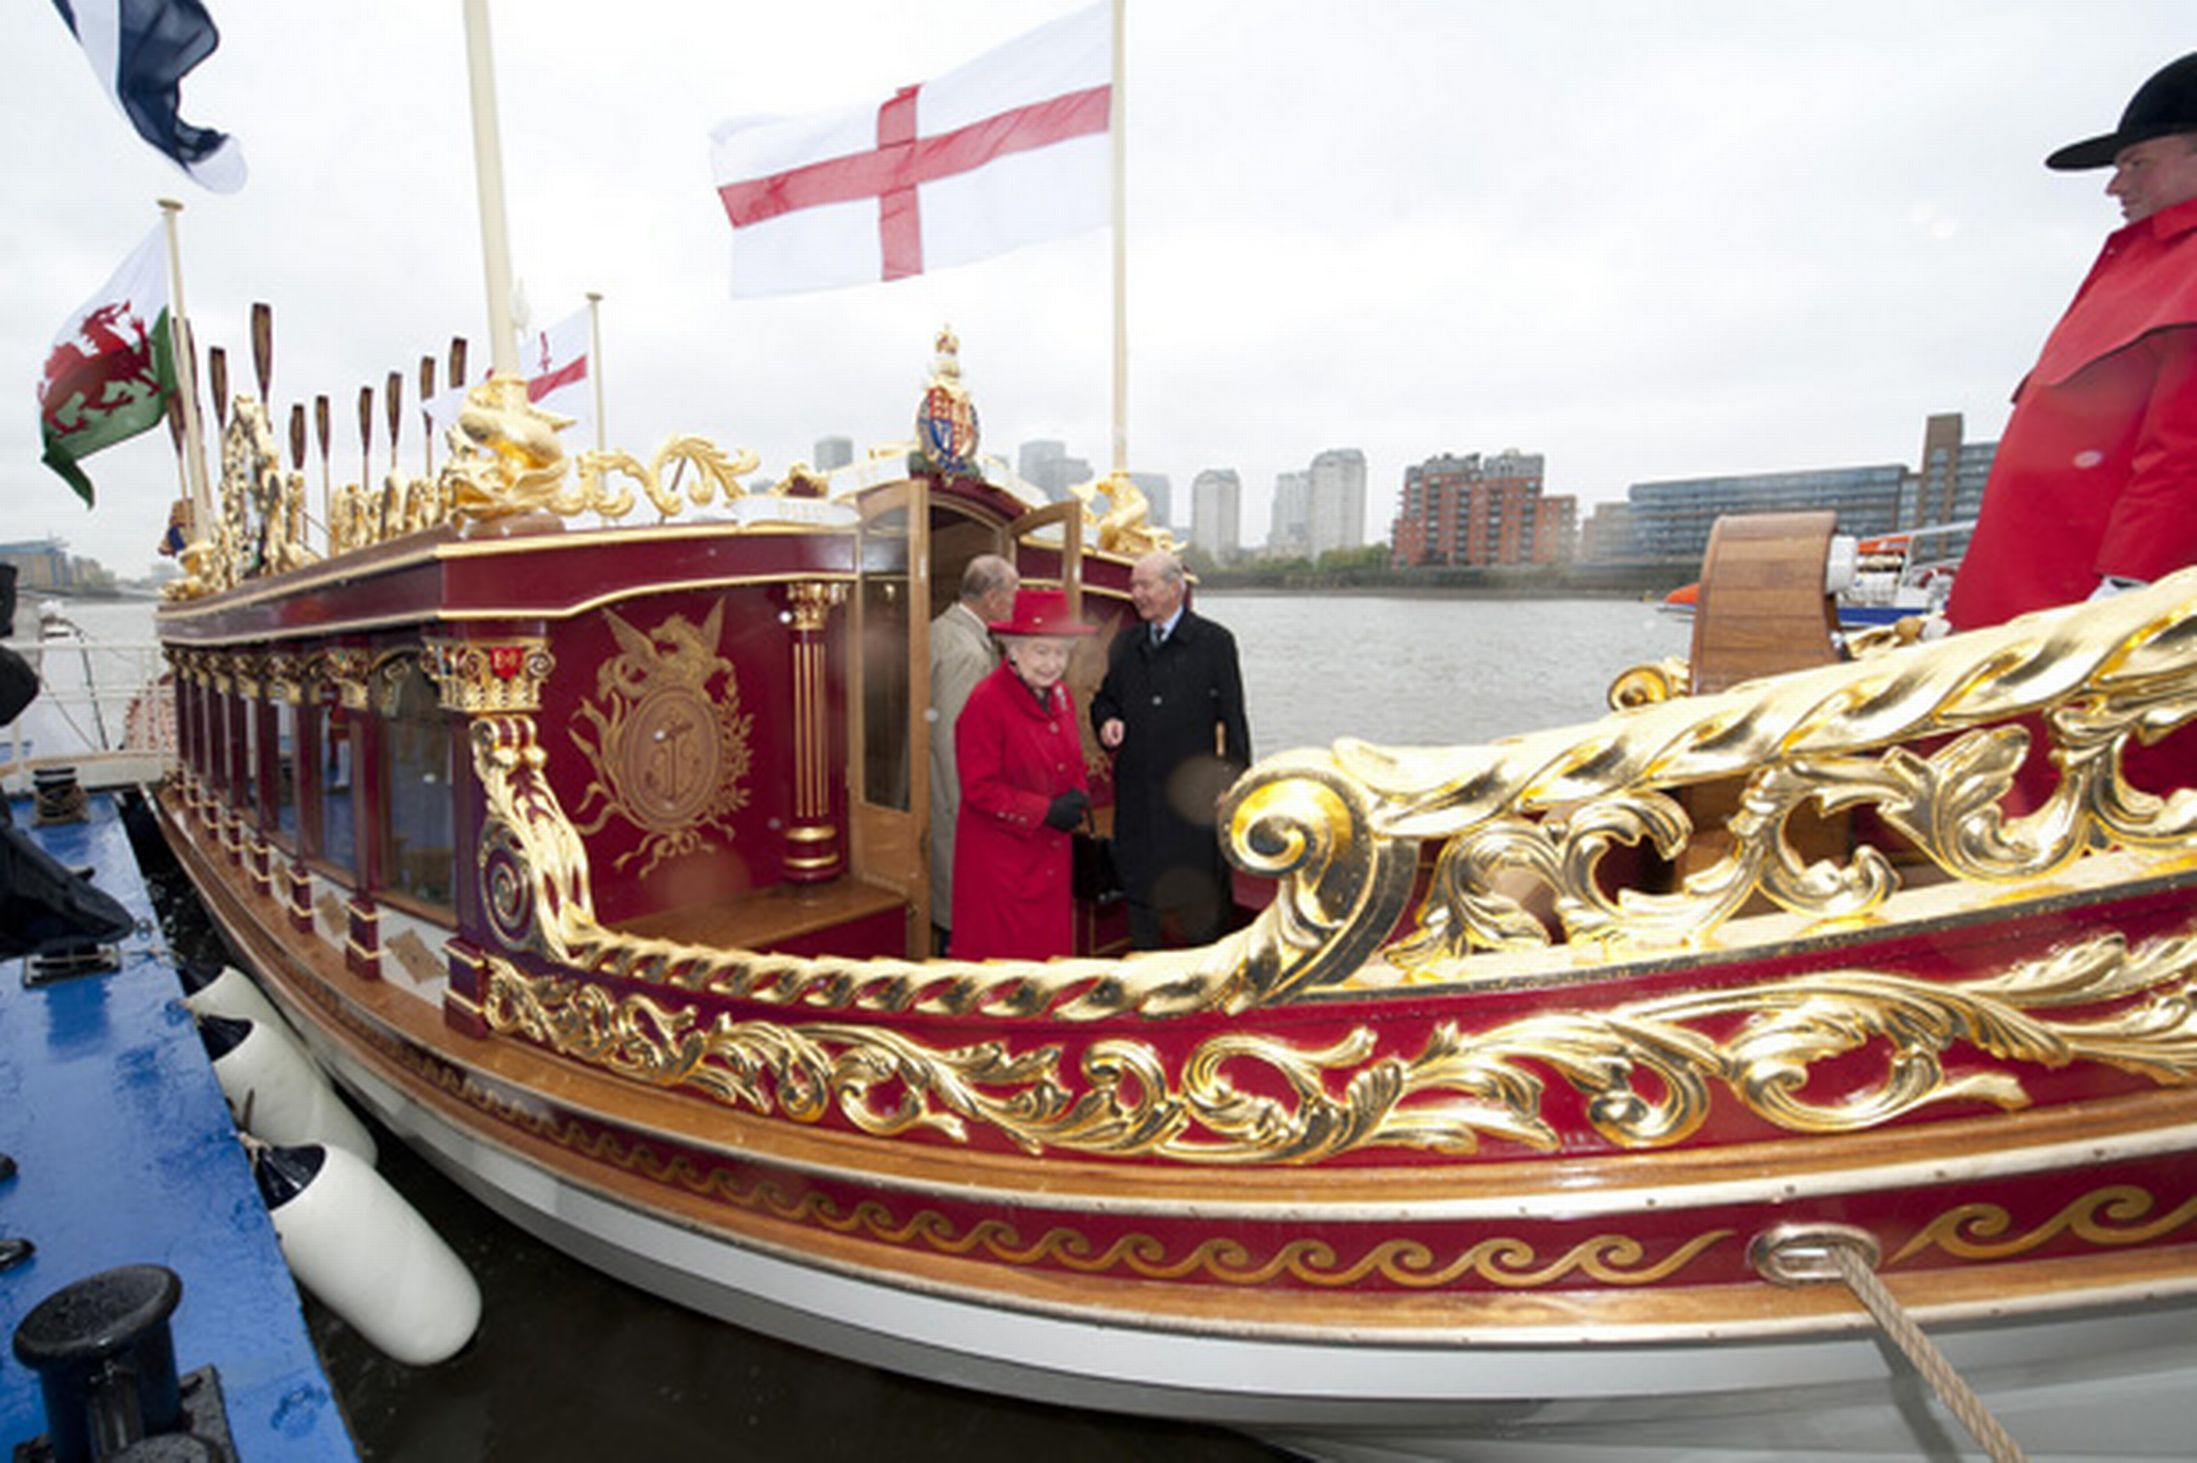 Queen Elizabeth II and Duke of Edinburgh visit Gloriana, the new Royal Row Barge for the first time, at Greenland Pier on the Thames-806510